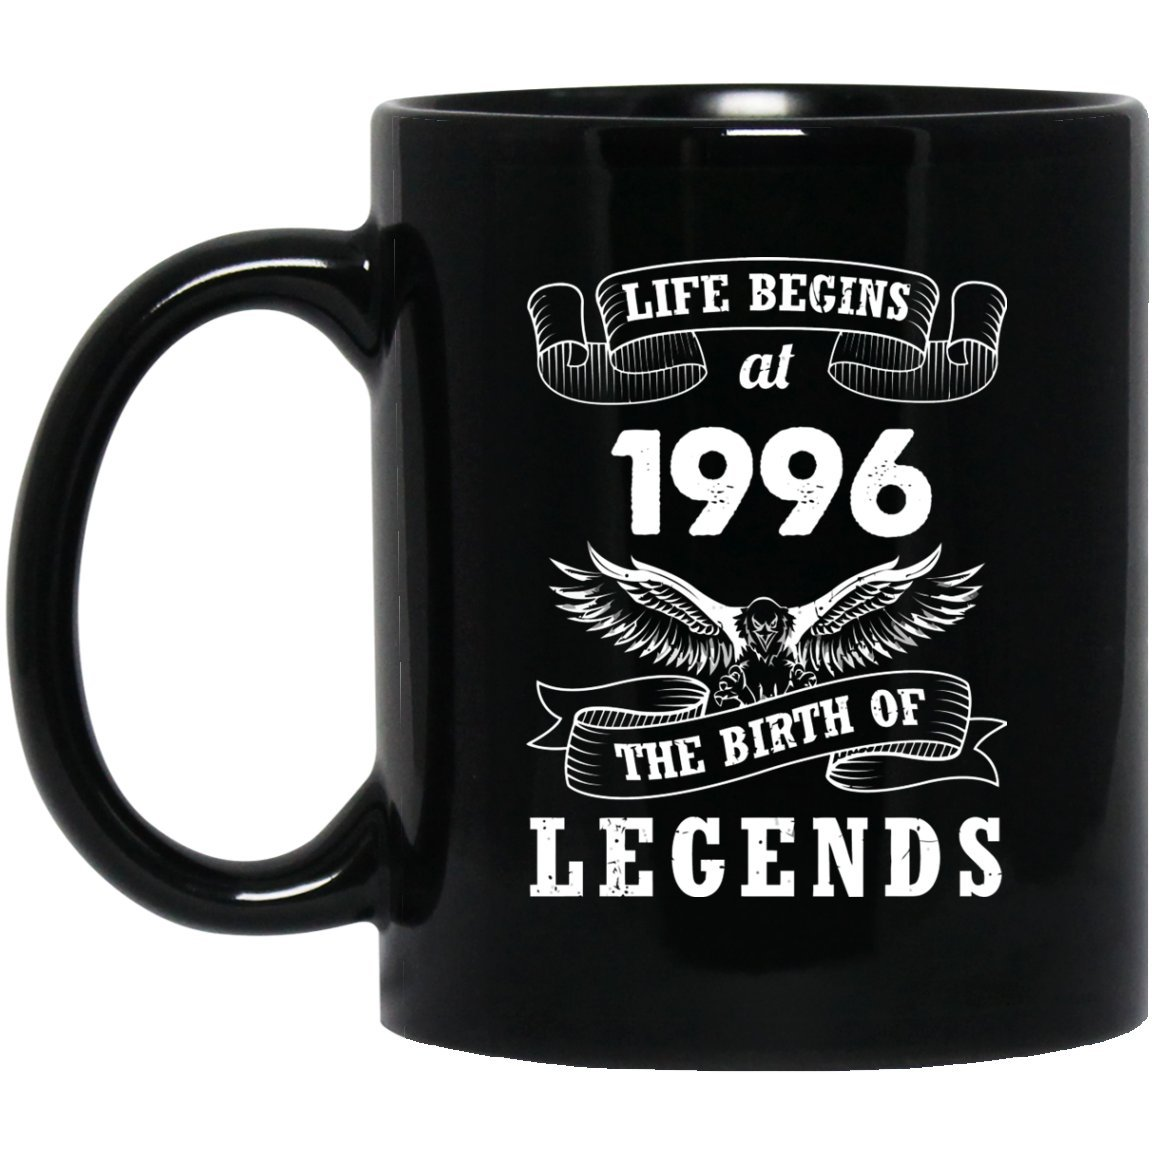 22nd Birthday Mug Gift For Dad Mom Life Begins At 1996 The Birth Of Legends Gifts Idea Best Friend